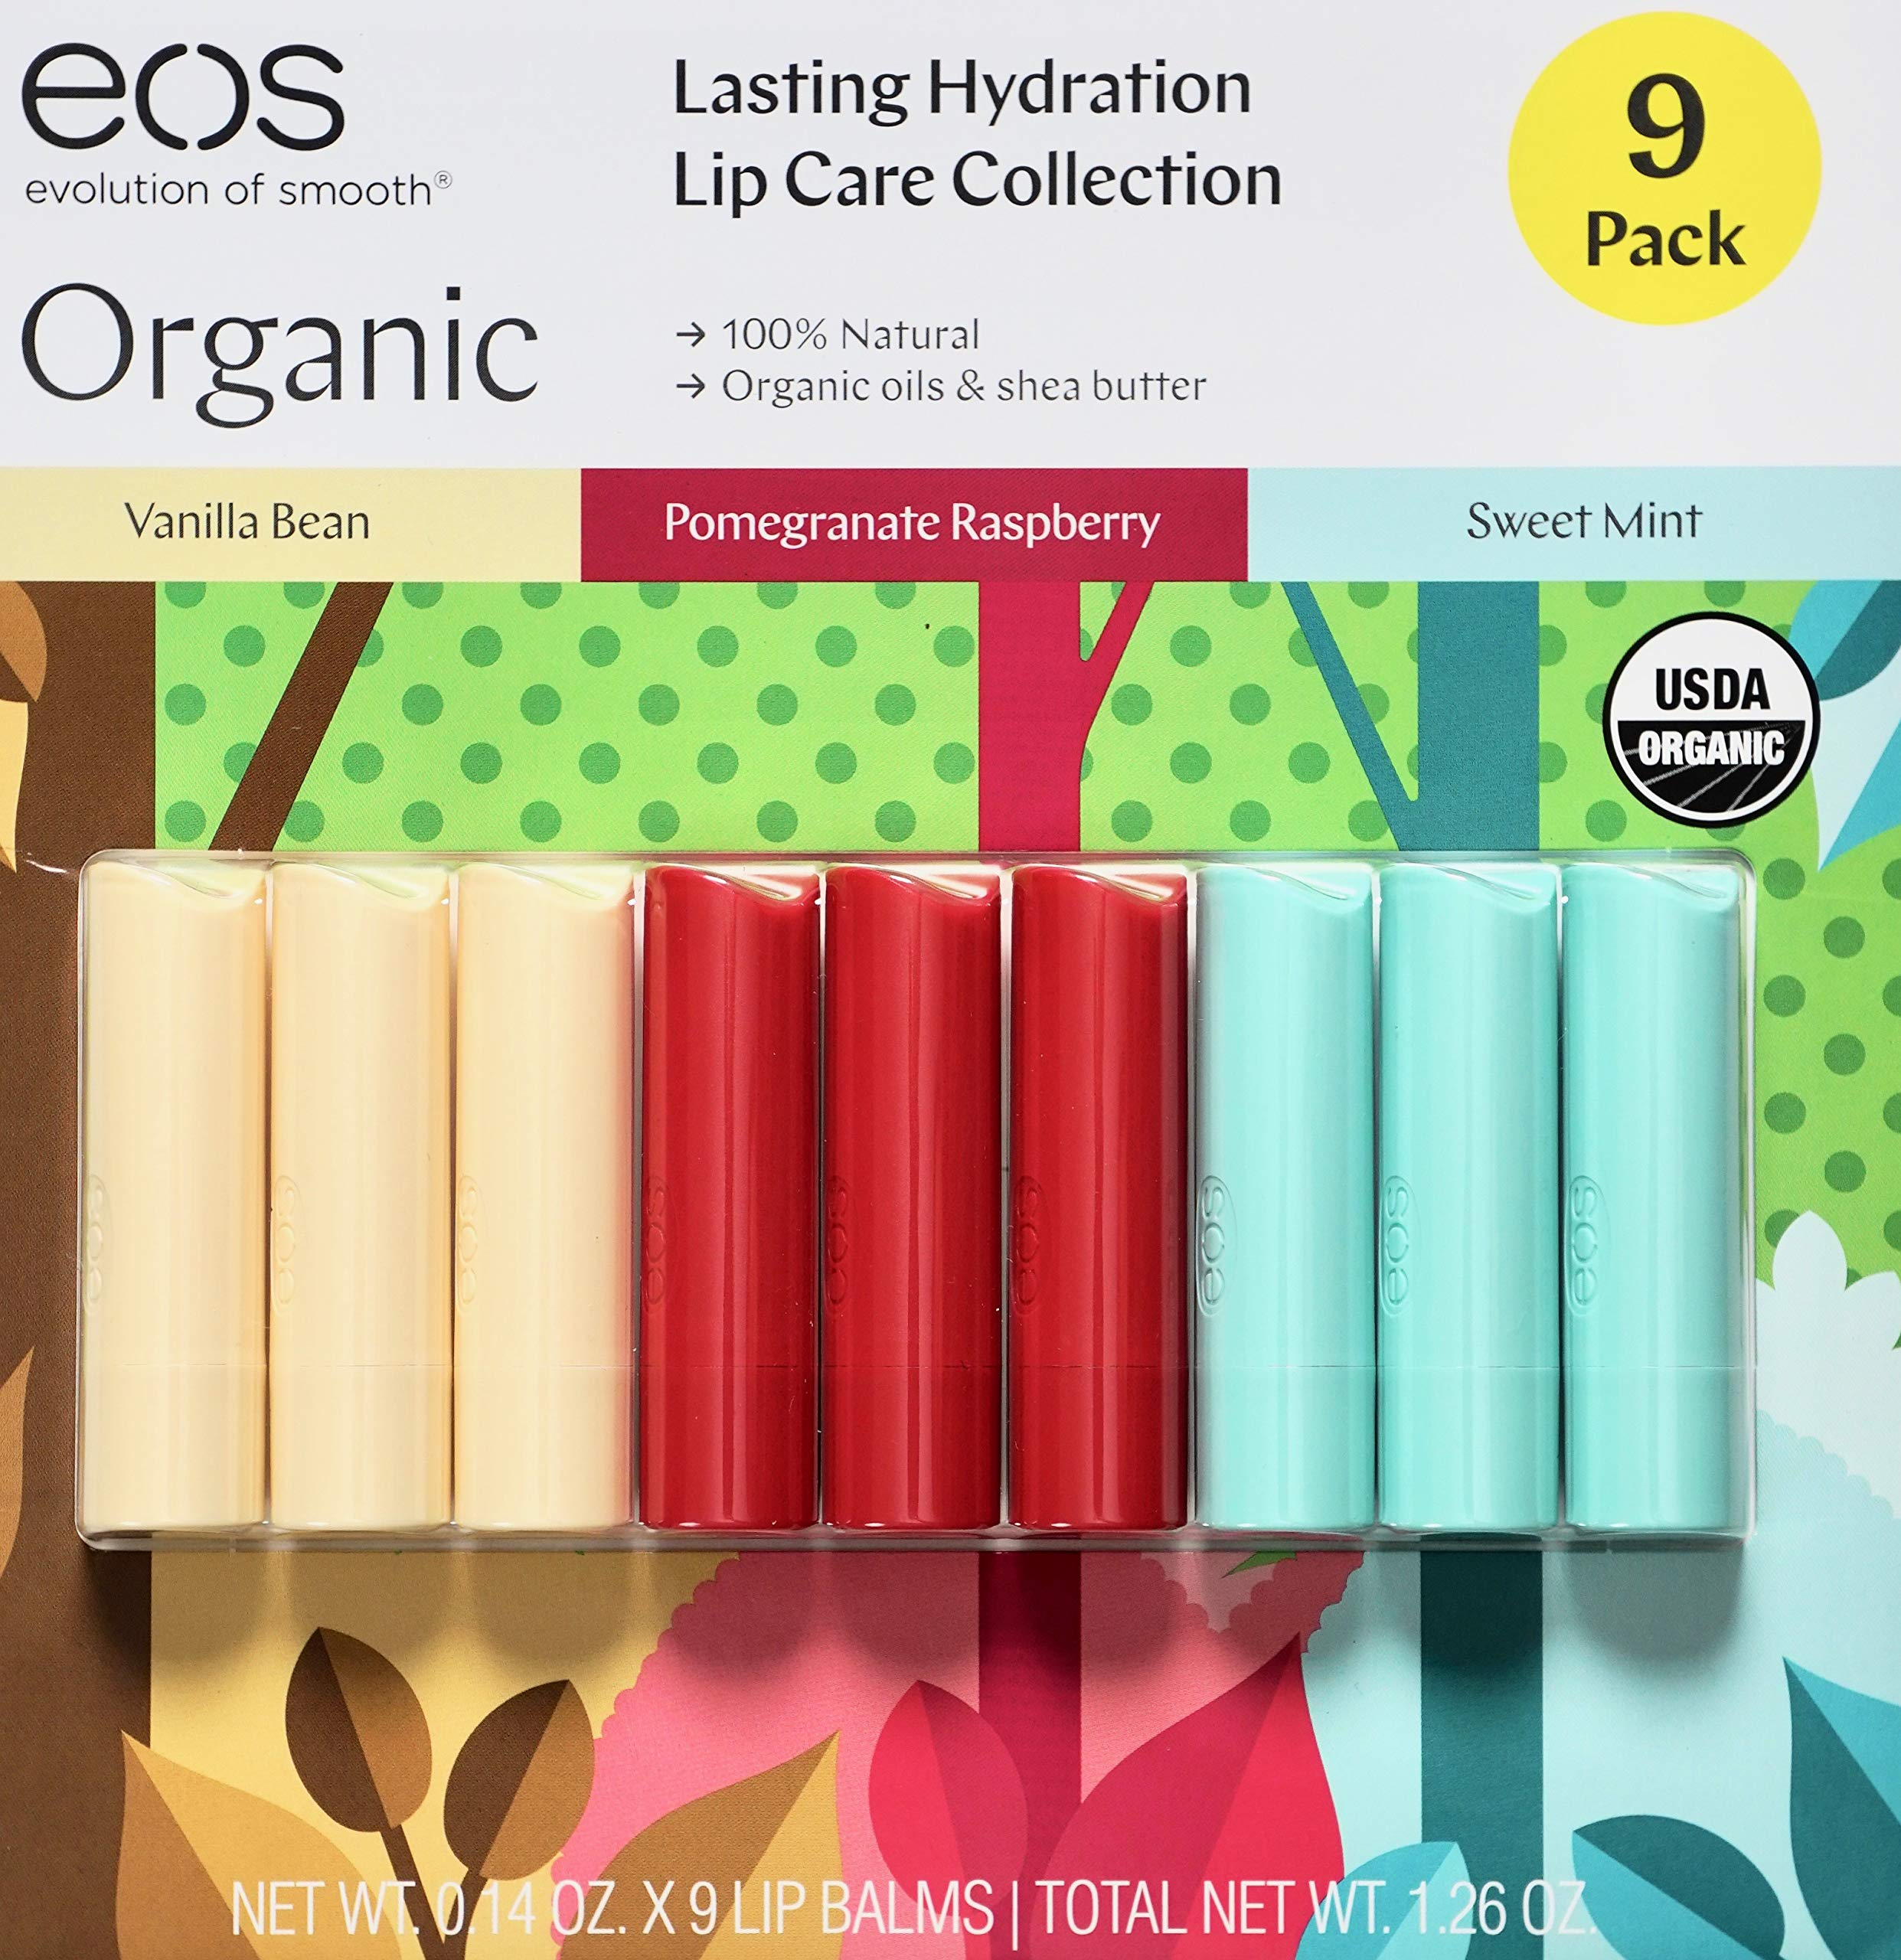 EOS Organic Lip Balm Care Collection, 9 Pack